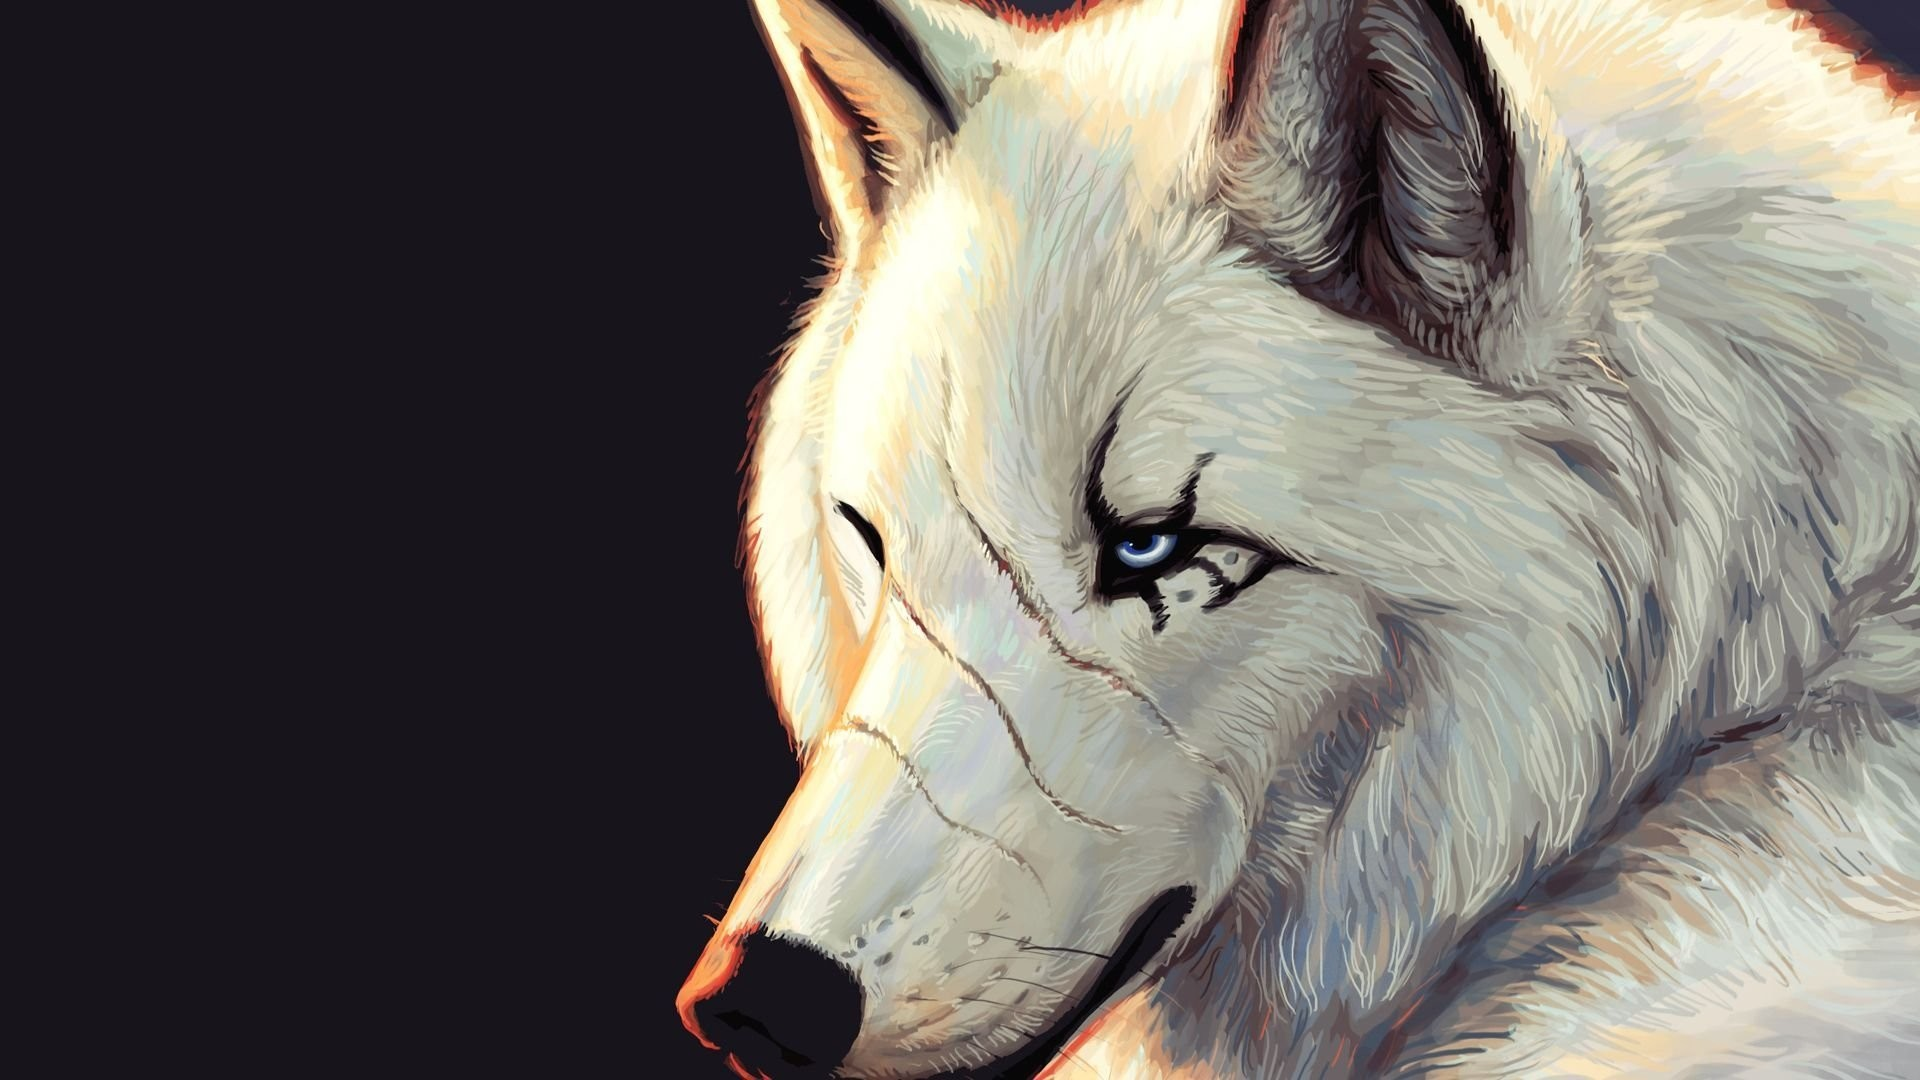 Res: 1920x1080, HD Wallpaper | Background Image ID:418943.  Animal Wolf